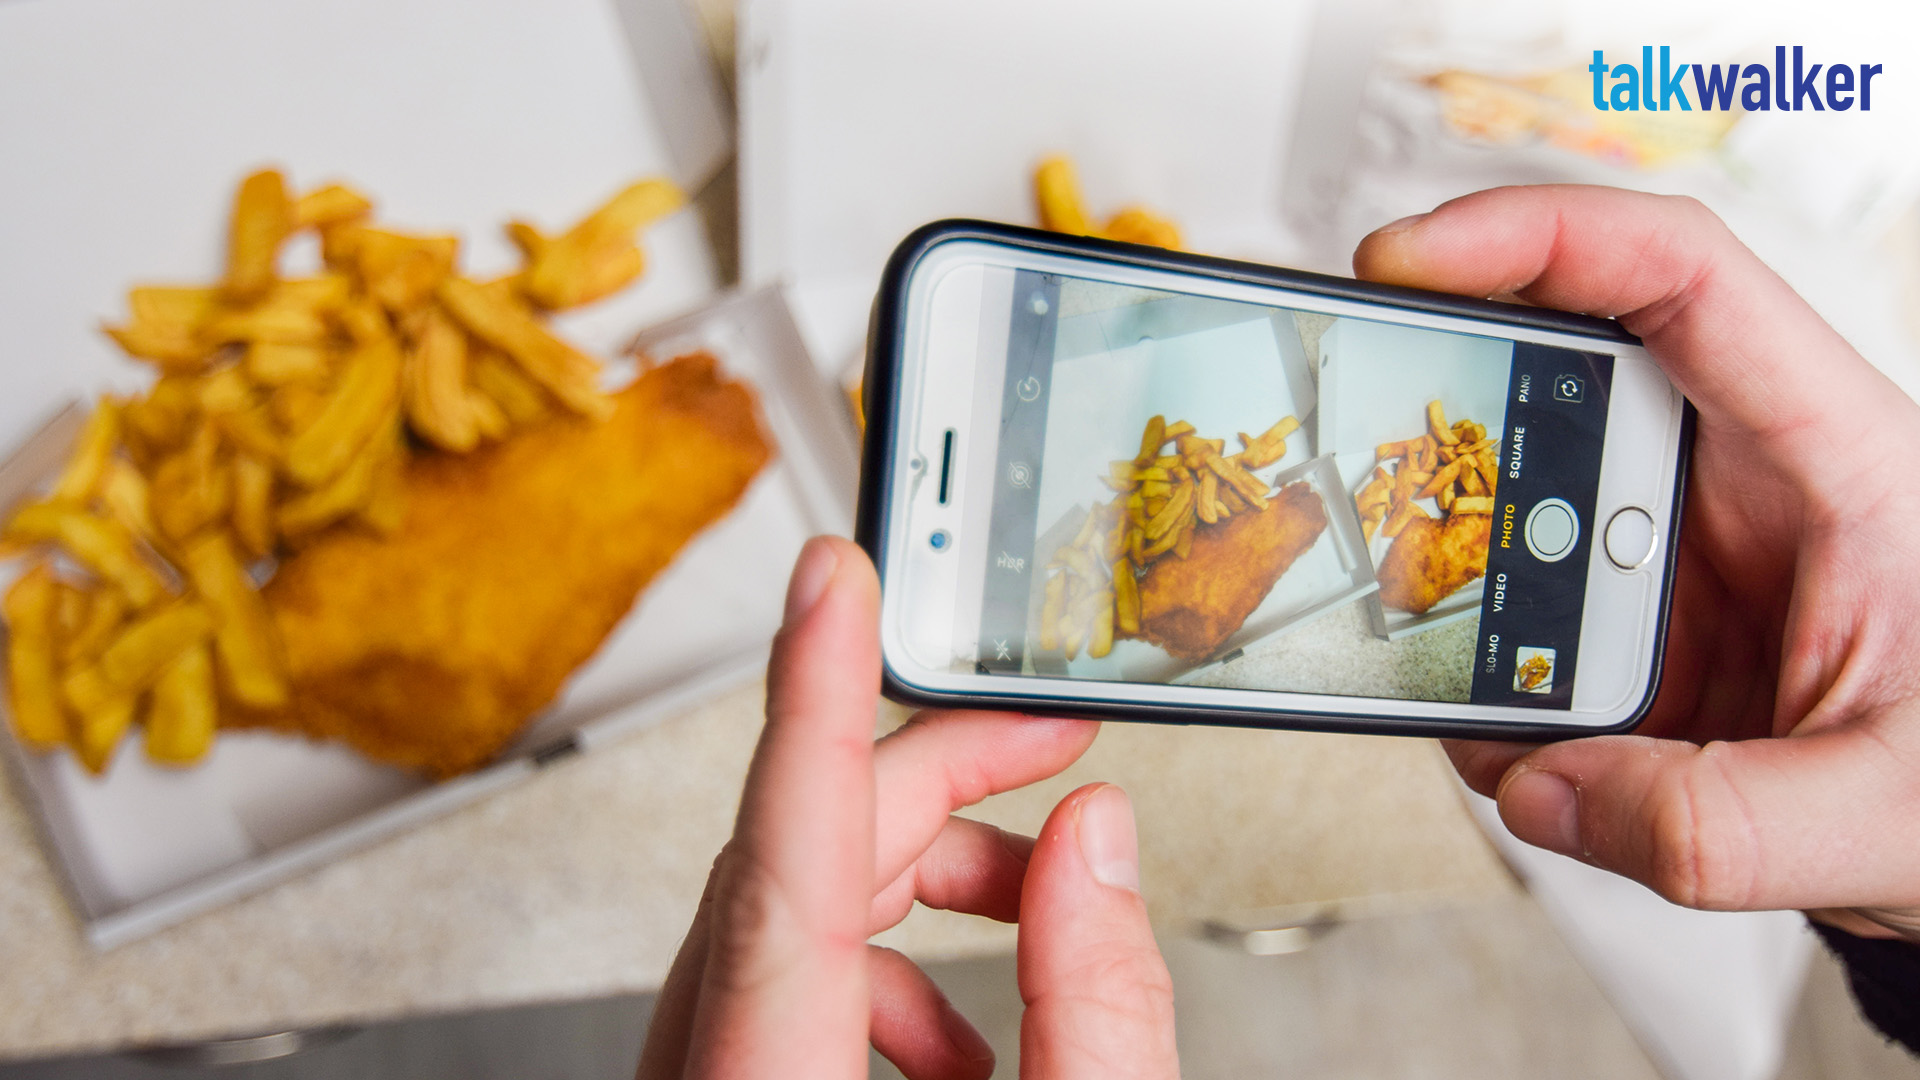 UK influencer taking picture of food with smartphone